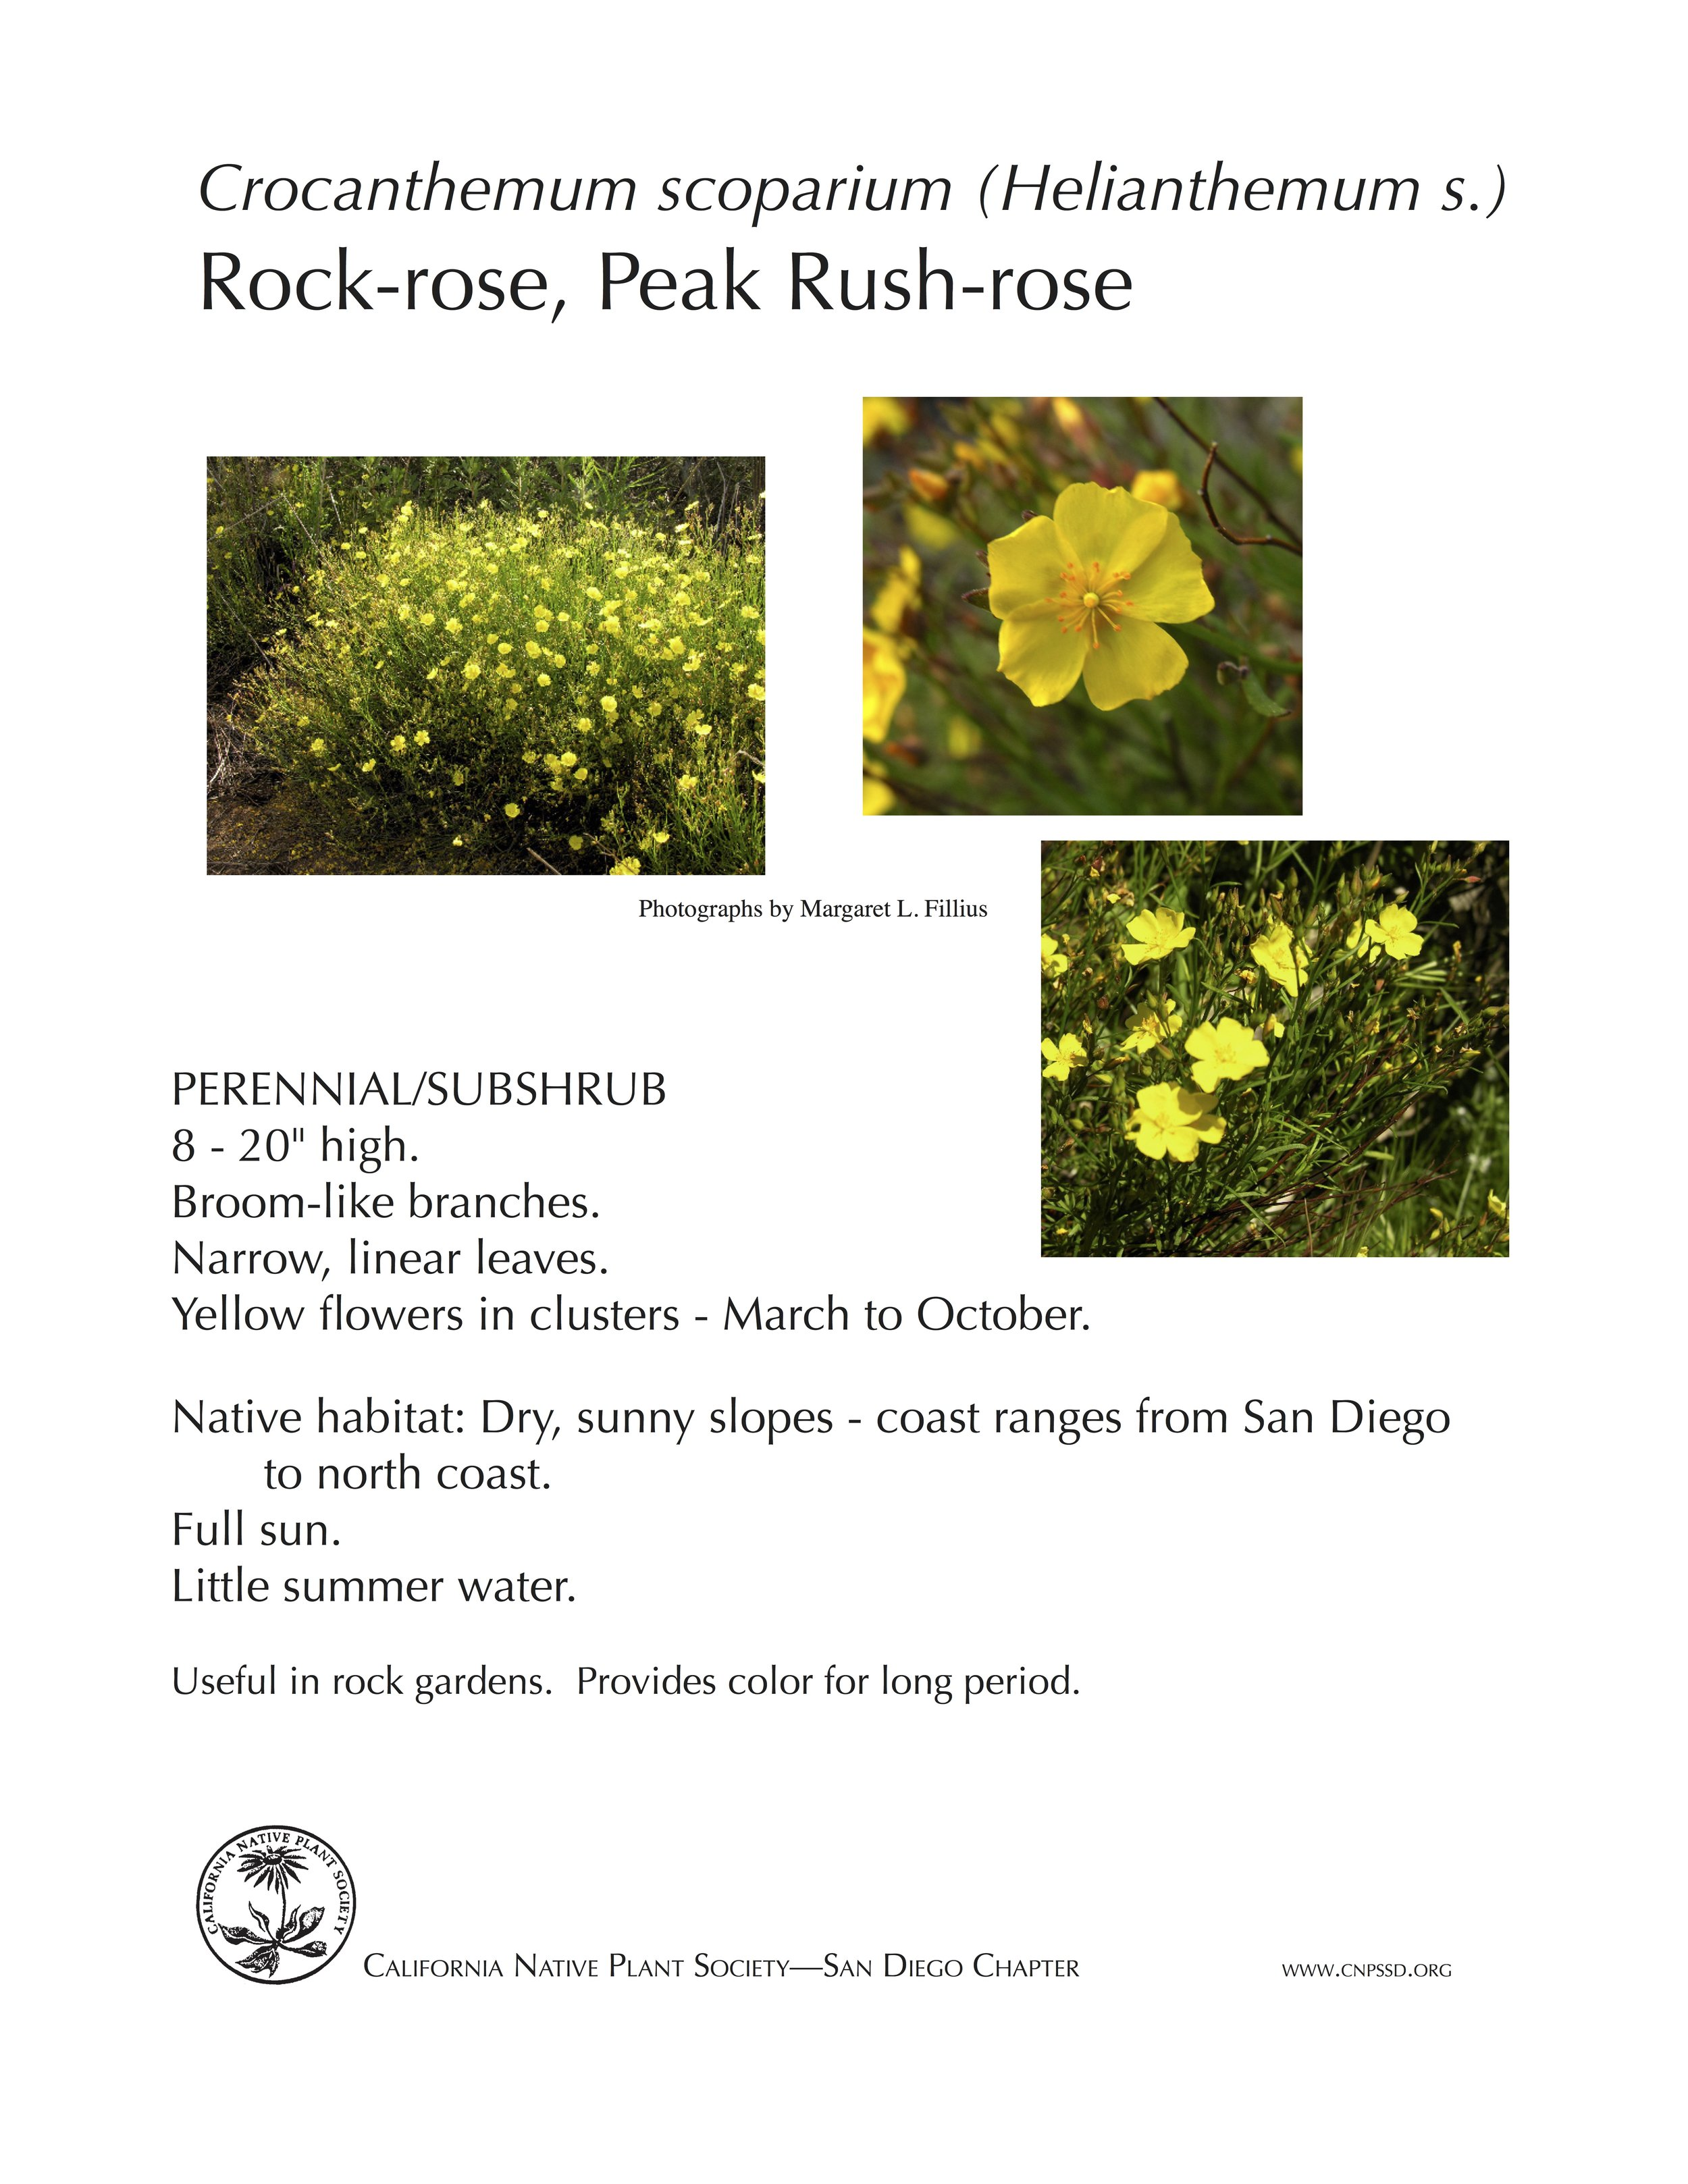 Crocanthemum scoparium Rock Rose.jpg